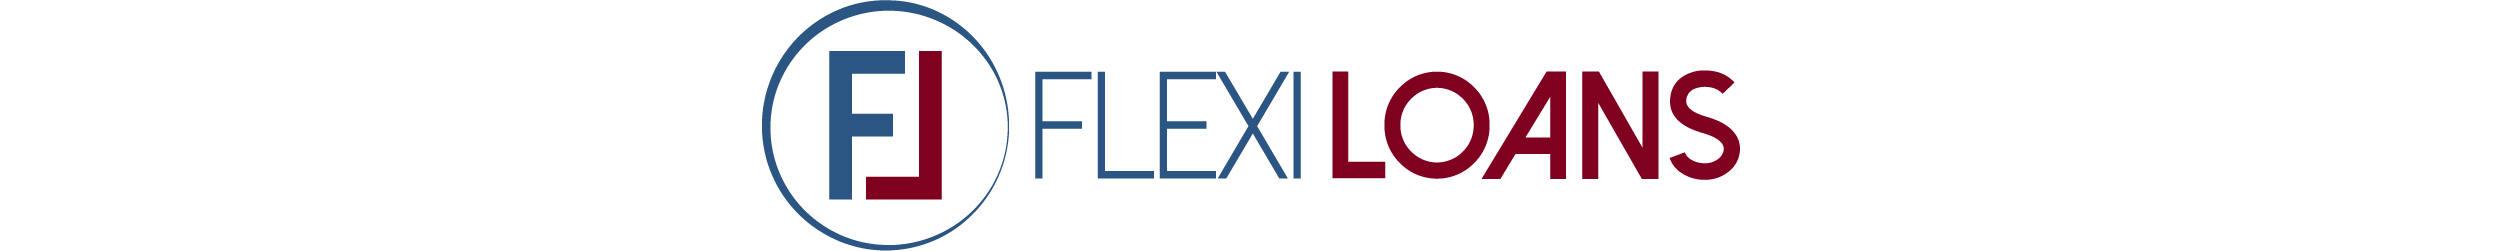 FlexiLoans - Quick Business Loans for MSMEs in India without collateral